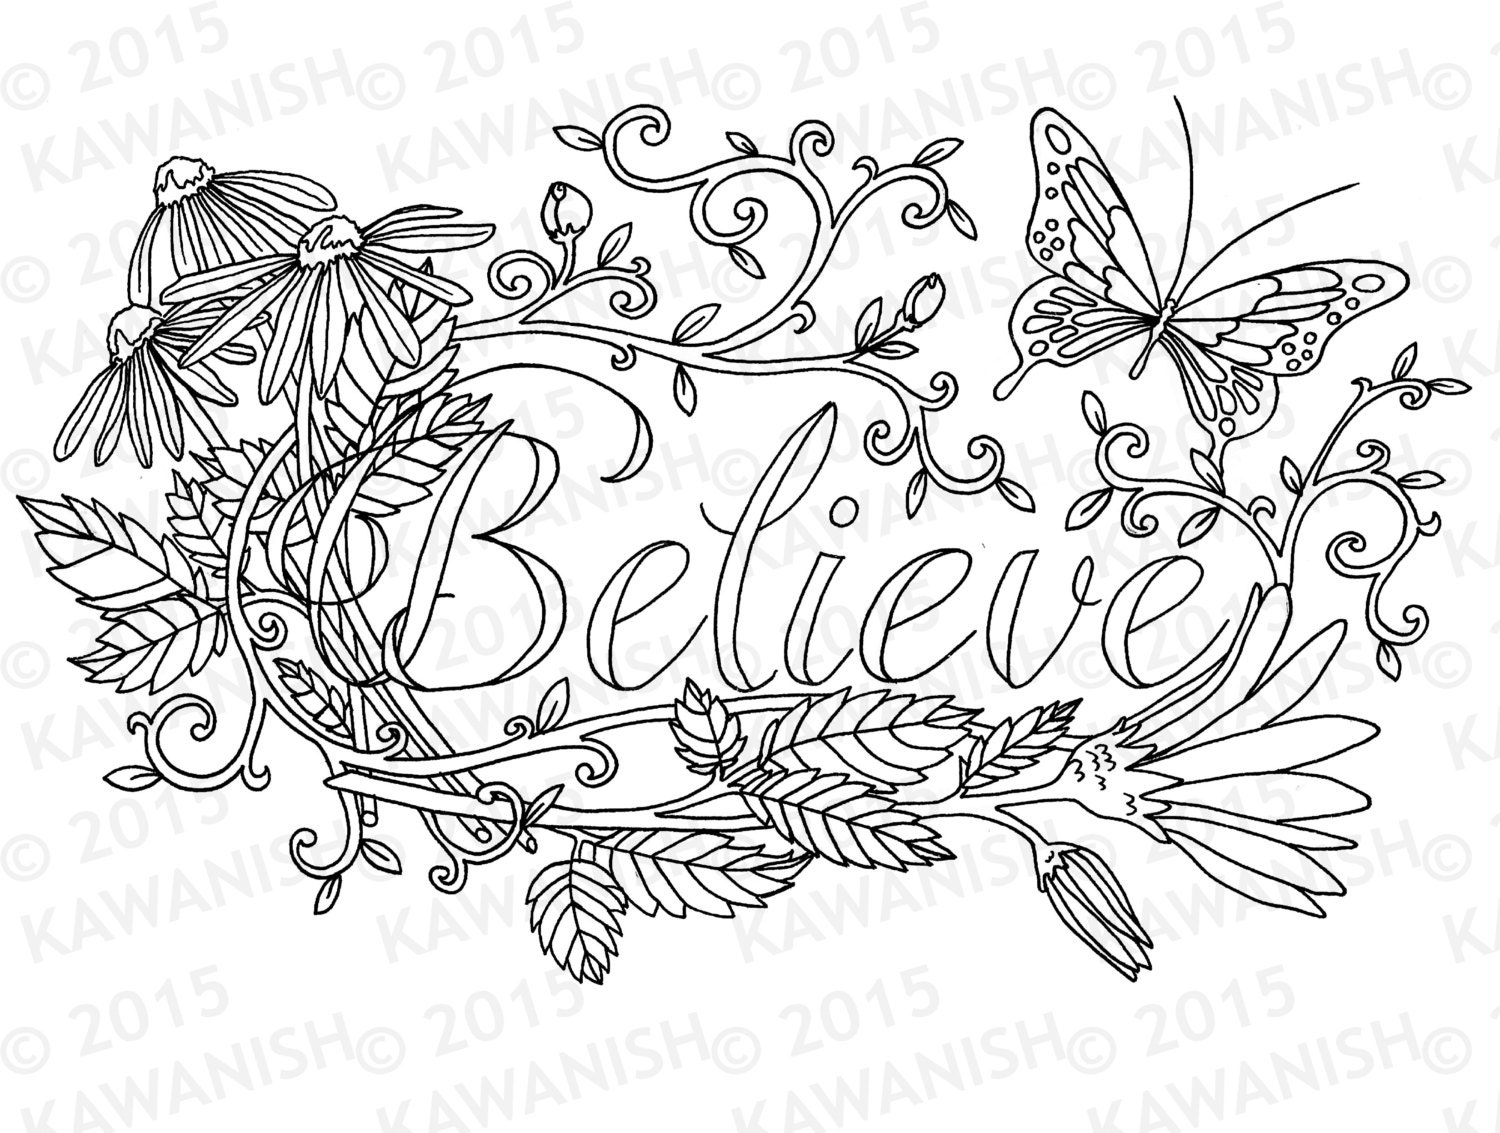 zoom - Coloring Pages For Adults To Print Out